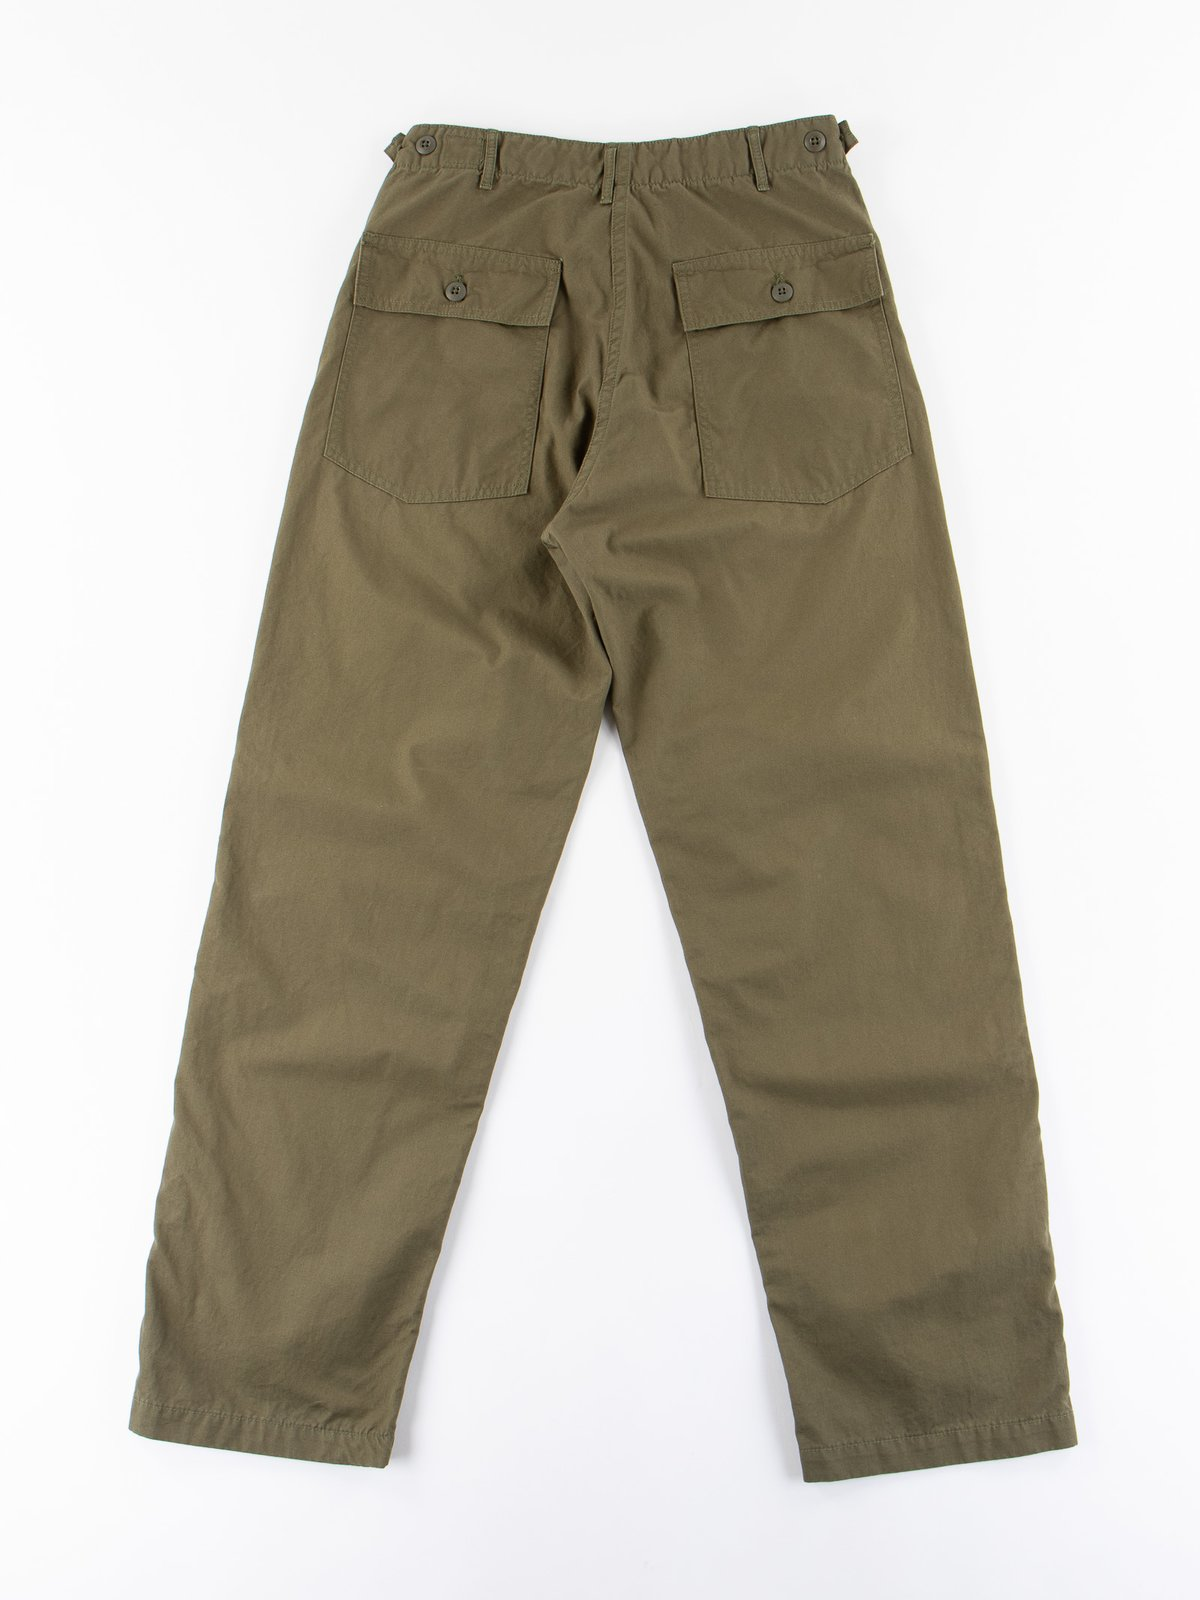 Army Green Ripstop Regular Fit US Army Fatigue Pant - Image 8